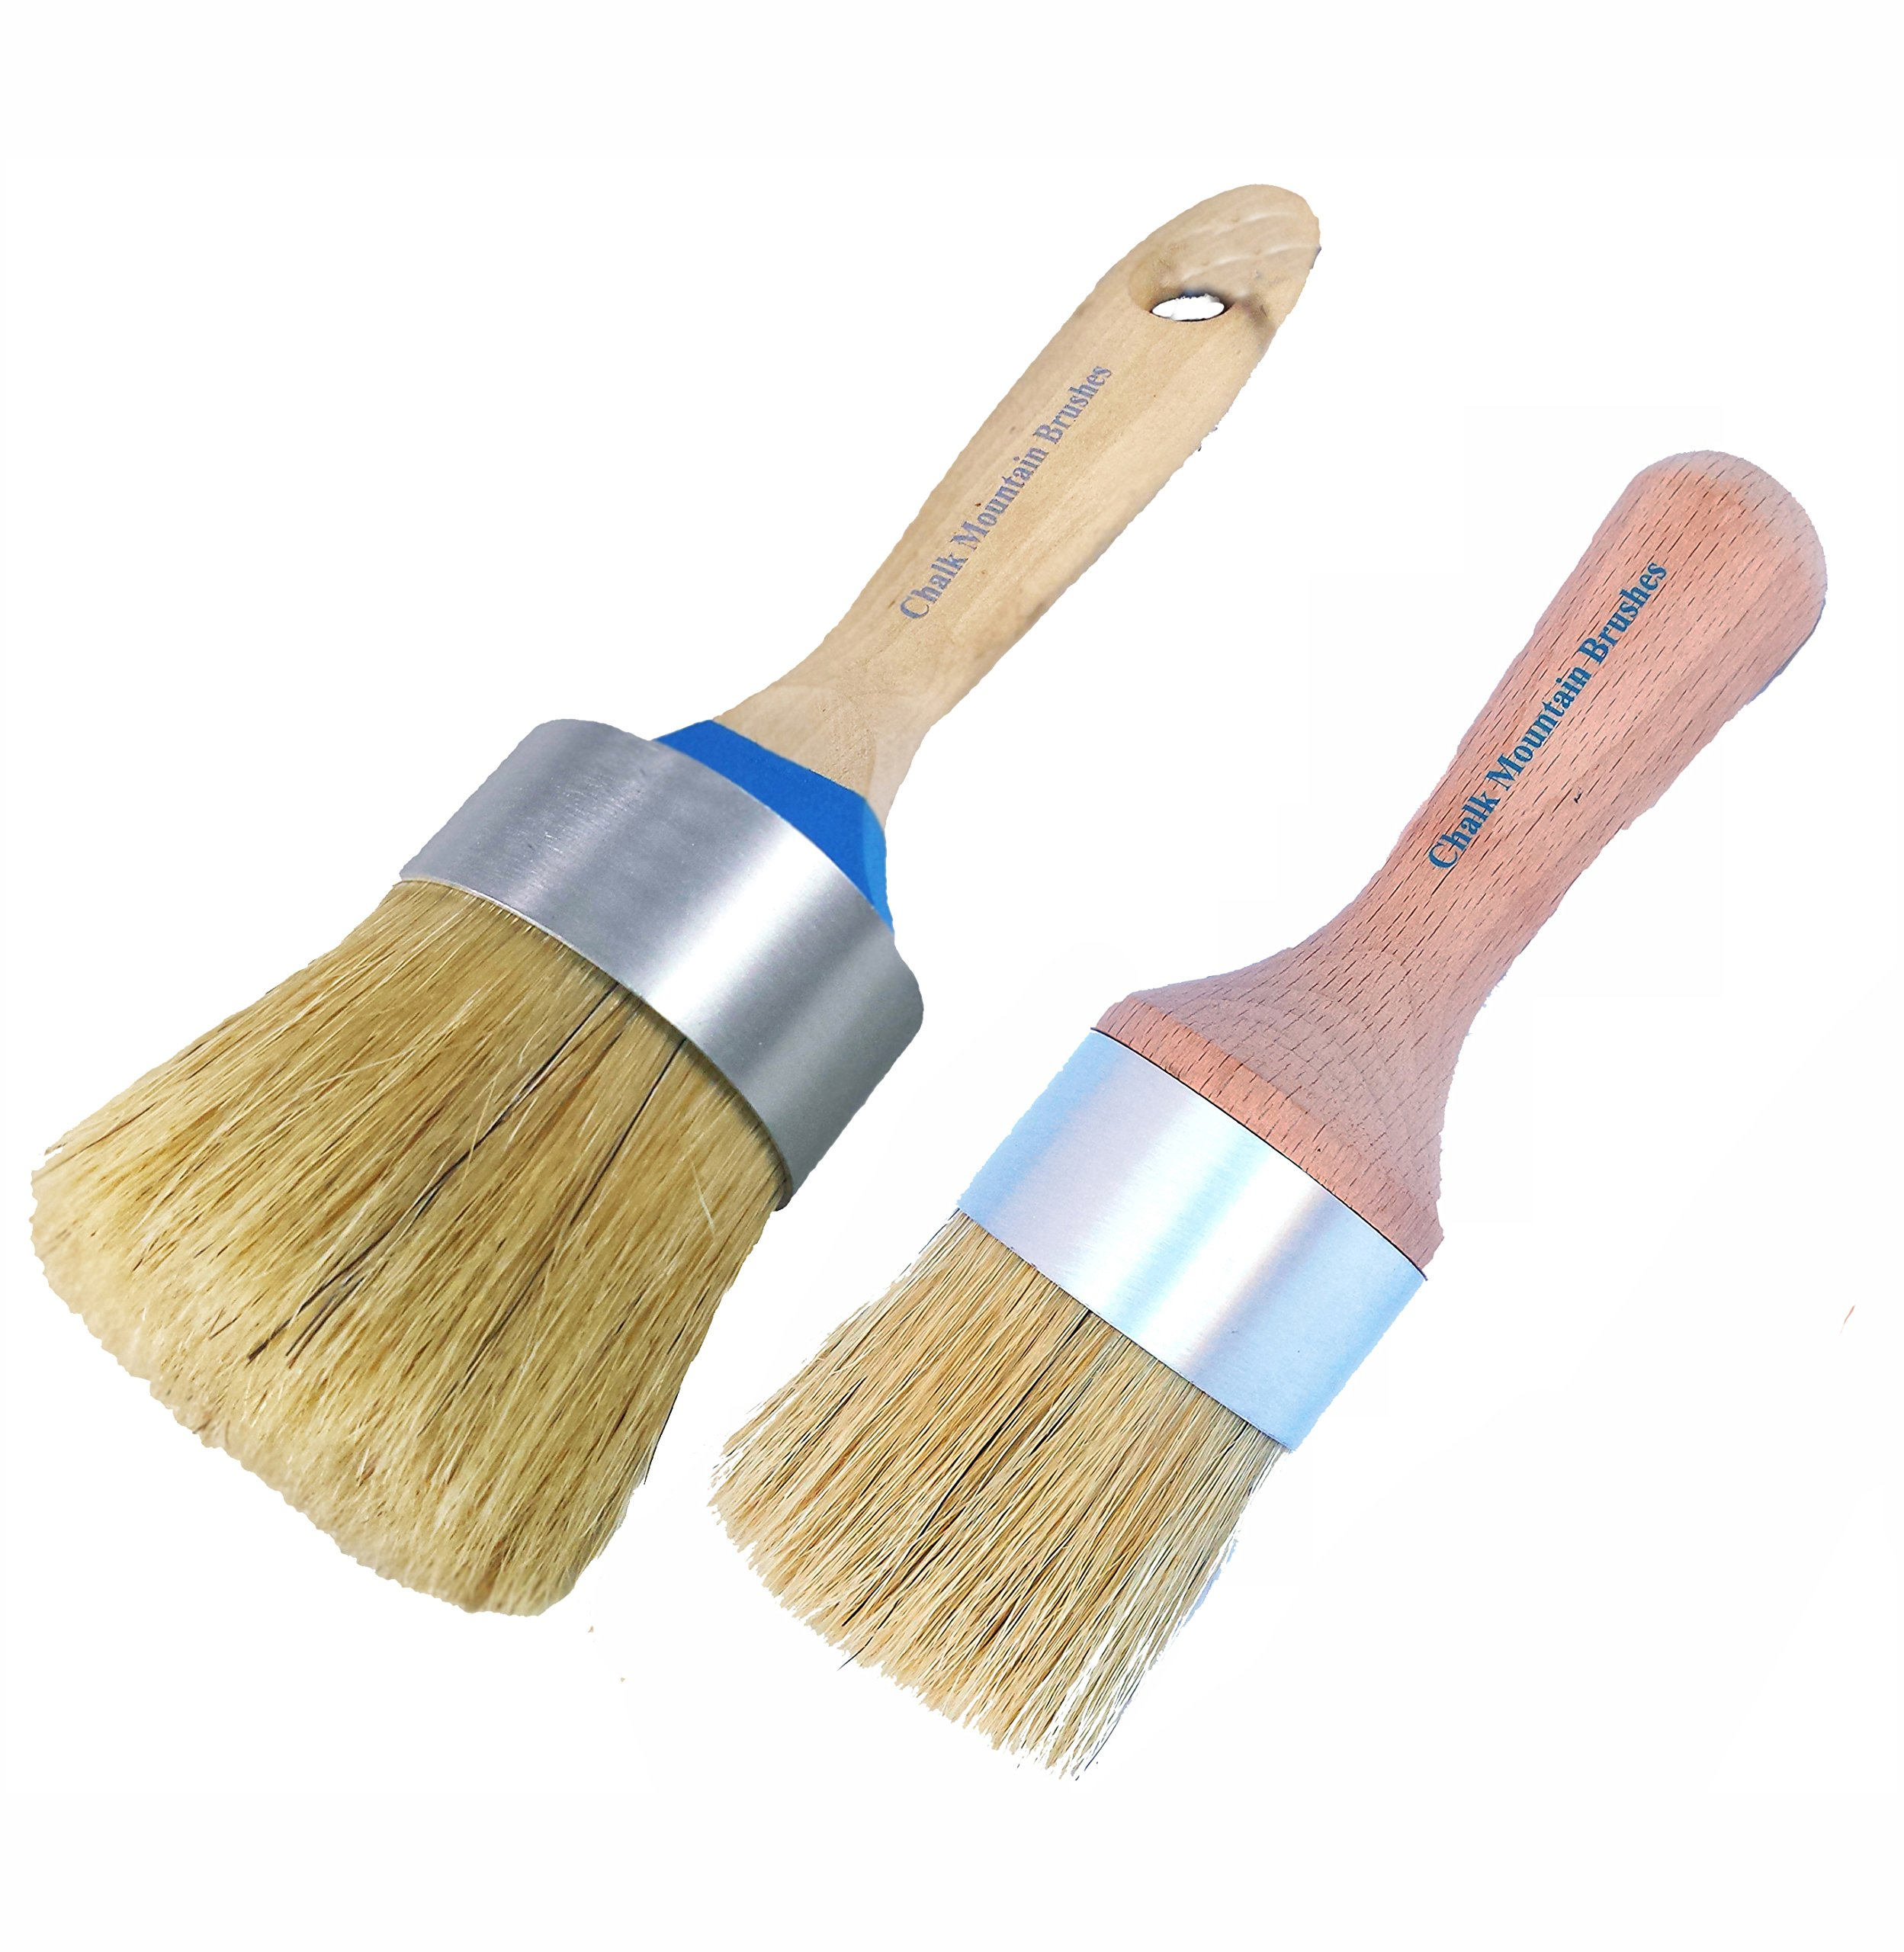 Chalk Mountain Brushes - 2 Pack Boar Hair Bristle Large Paint & Large Wax or Stenciling Brush Kit